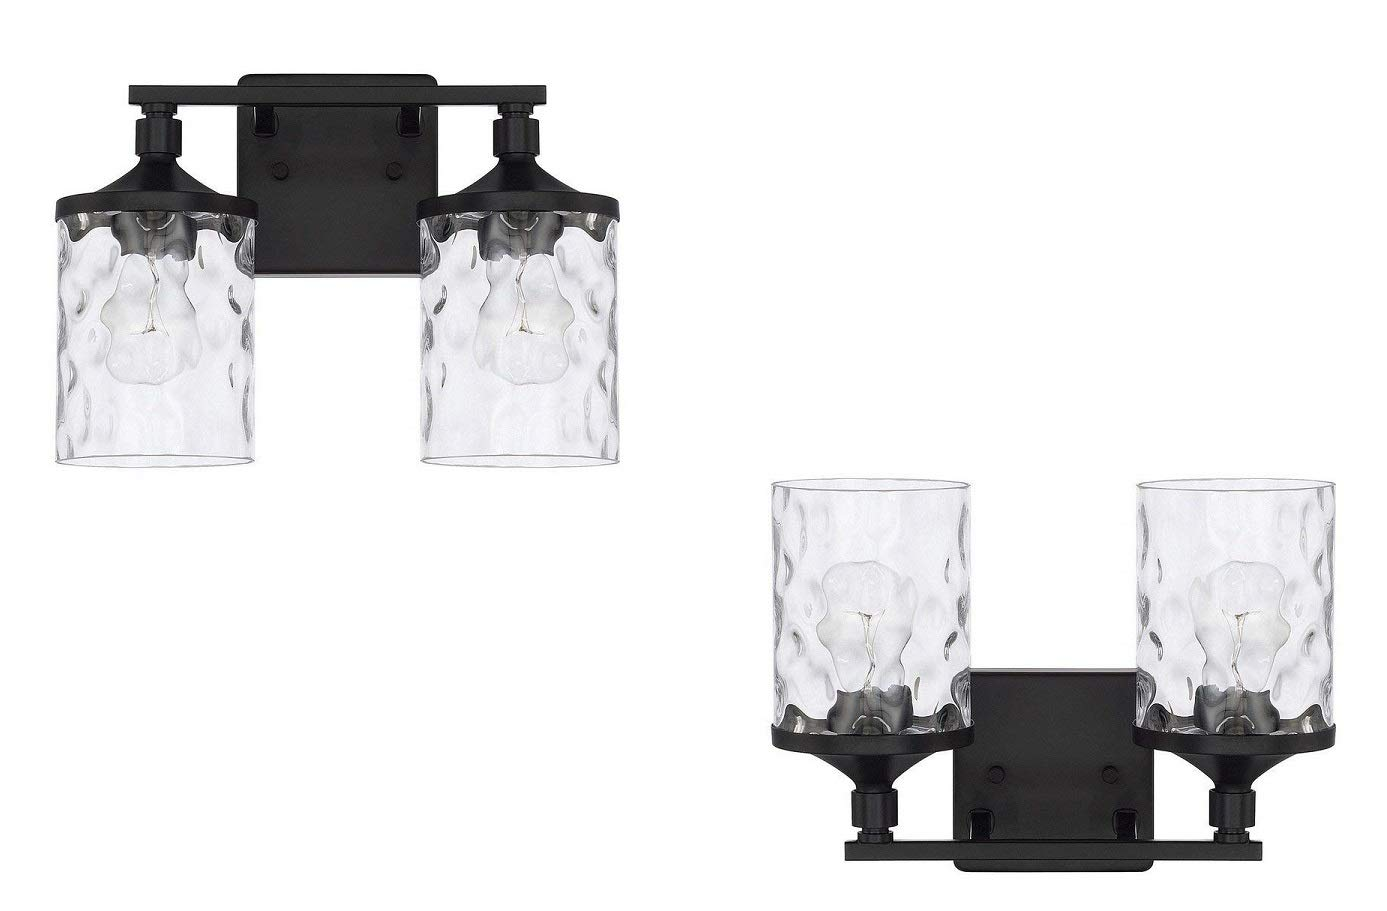 Capital Lighting Homeplace Colton – Two Light Bath Vanity, Matte Black Finish with Clear Water Glass – 2 Pack